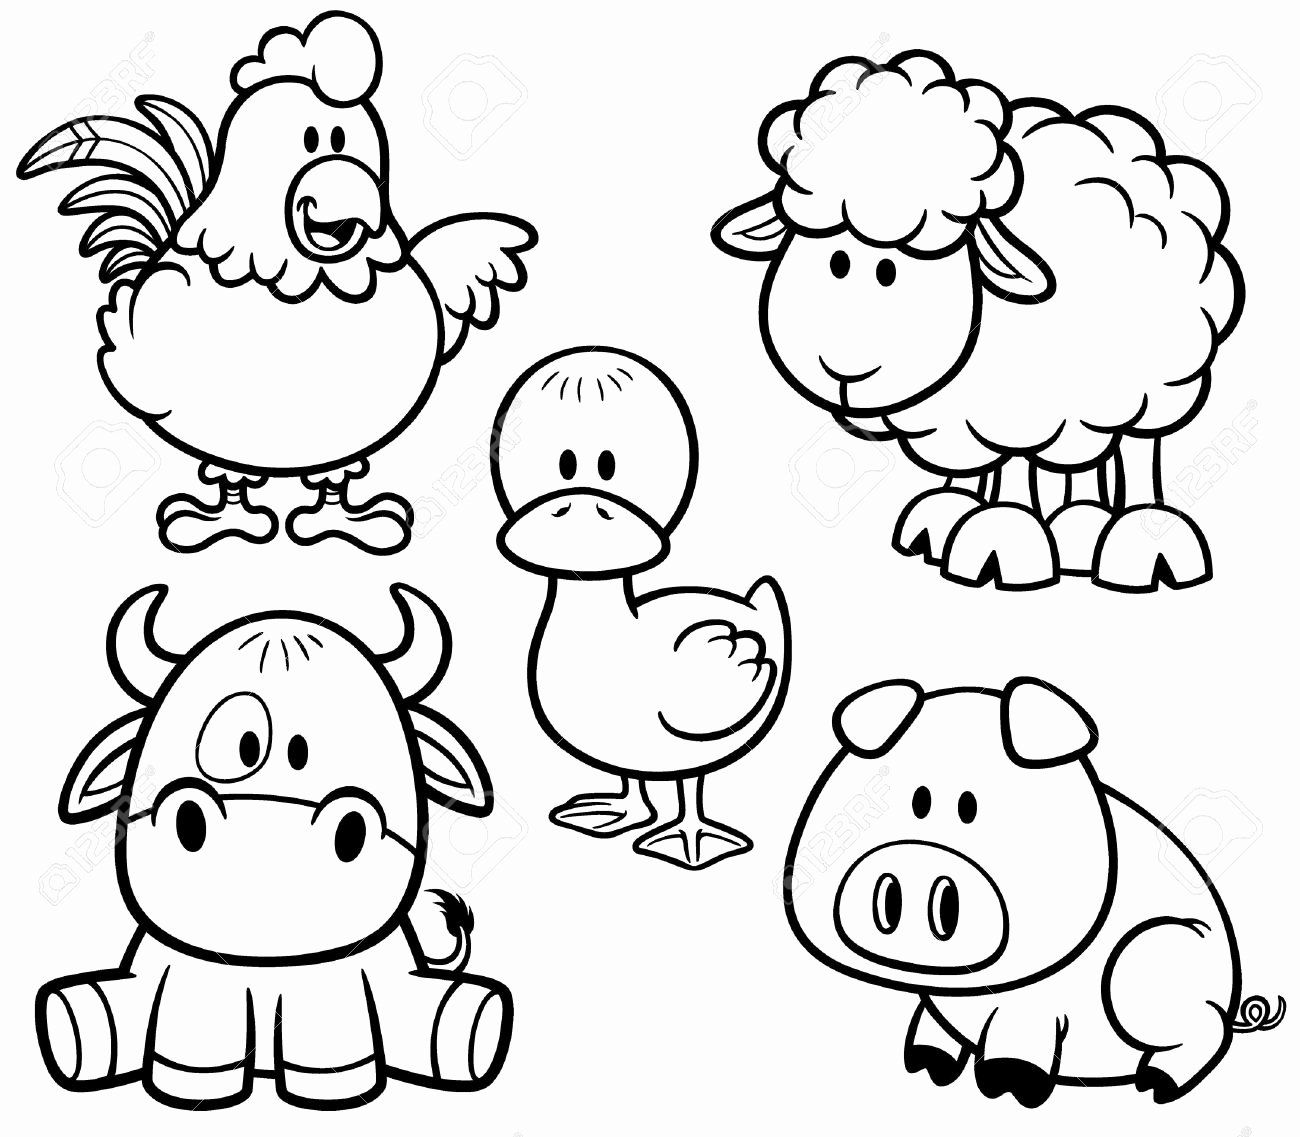 Free Farm Animals Coloring Pages In 2020 Animal Coloring Books